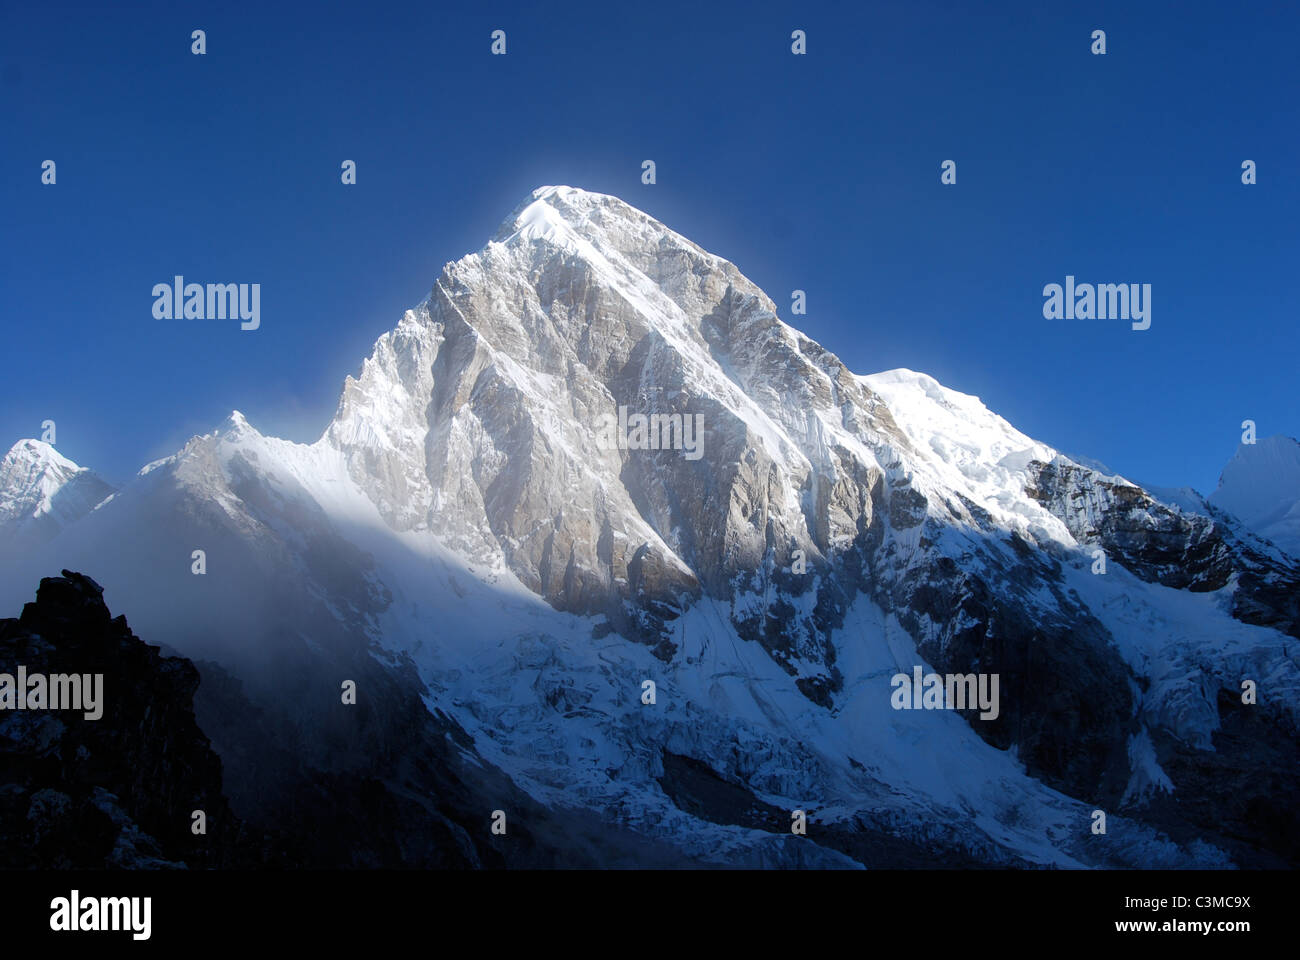 mount-everest-at-sunrise-taken-from-the-